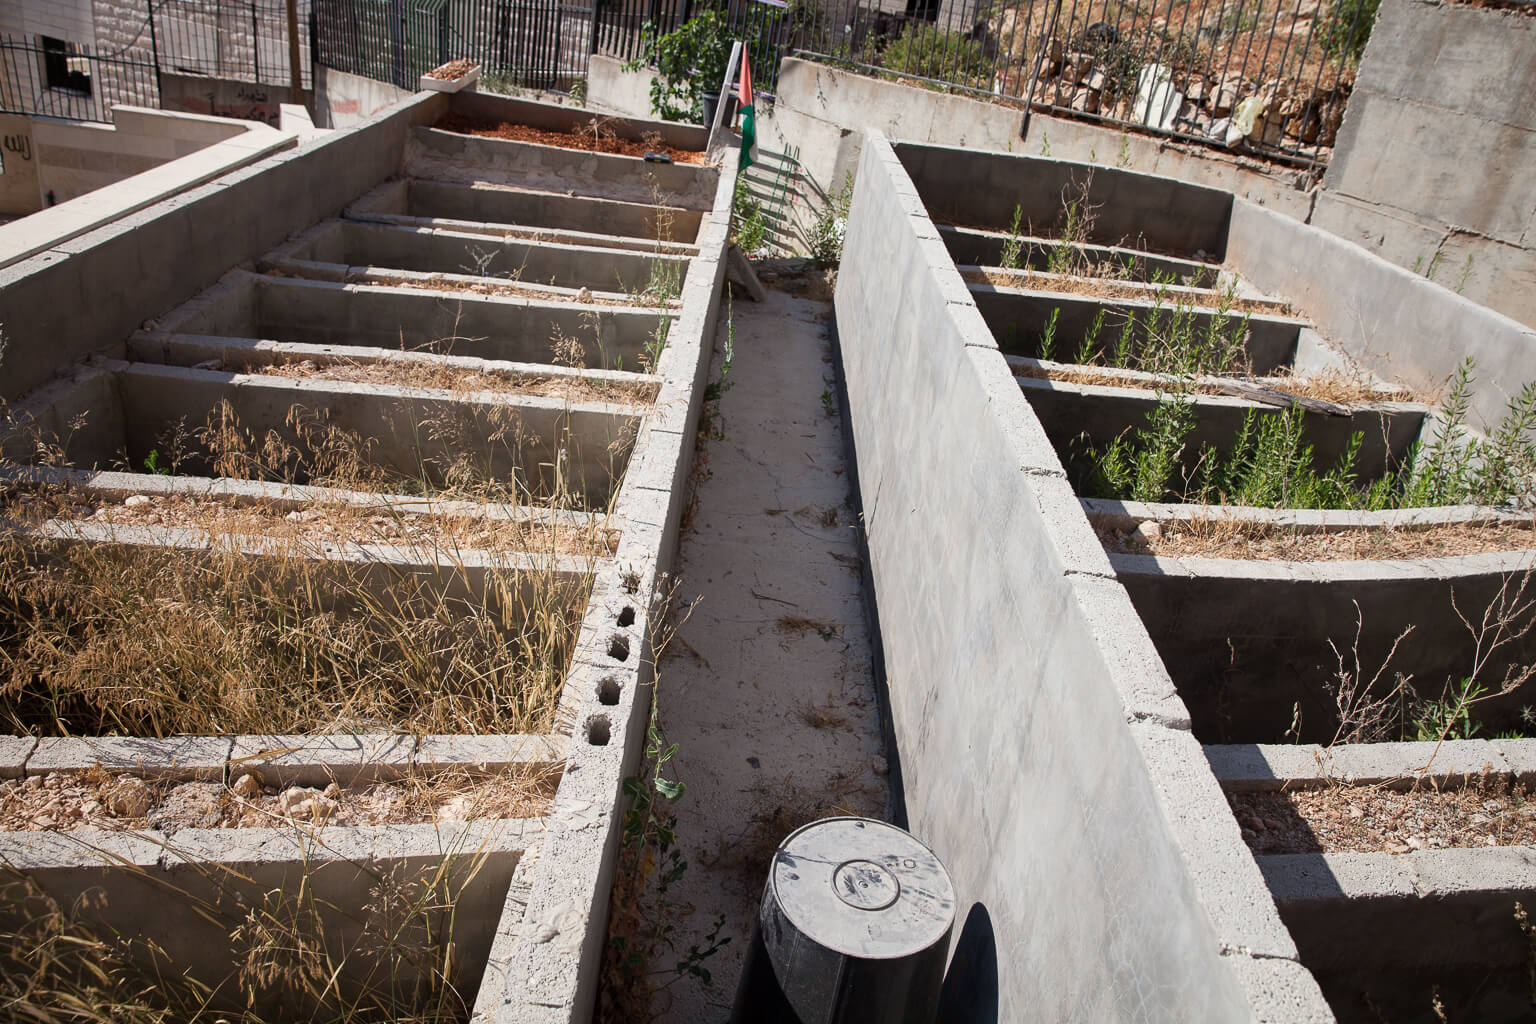 Eleven empty plots wait at the top of the Martyr's Cemetery.  When the new plots were added in 2013, it made local news, adding to rumors of a third Intifada. (Photo: Rebecca George)